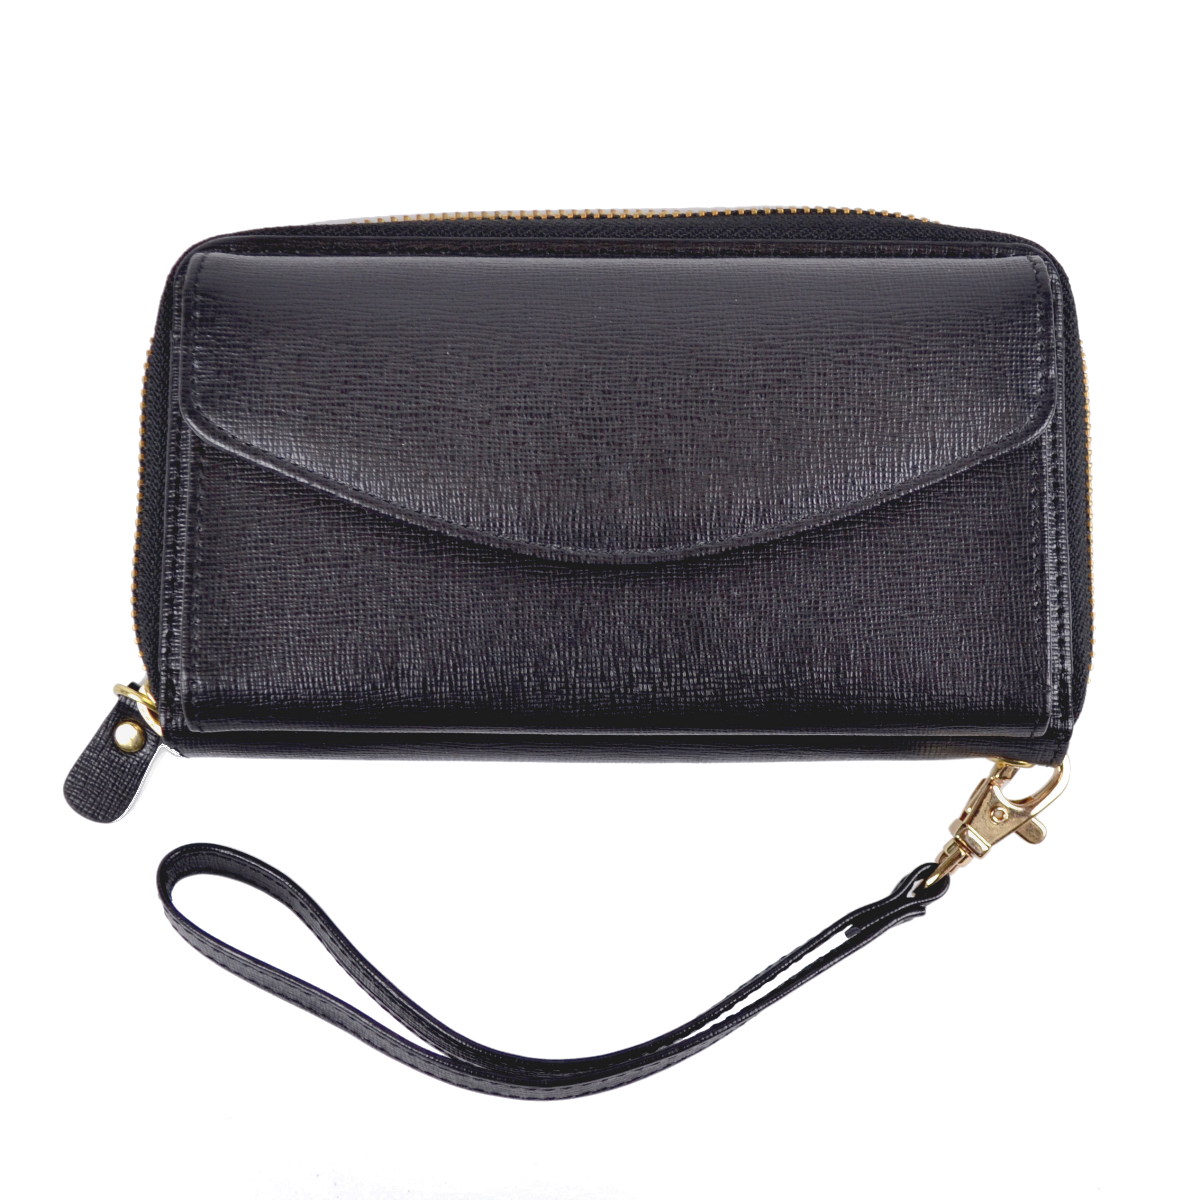 huge selection of 9f02a 433a1 Slim Zippered Credit Card iPhone Wristlet Wallet in Genuine Saffiano Leather